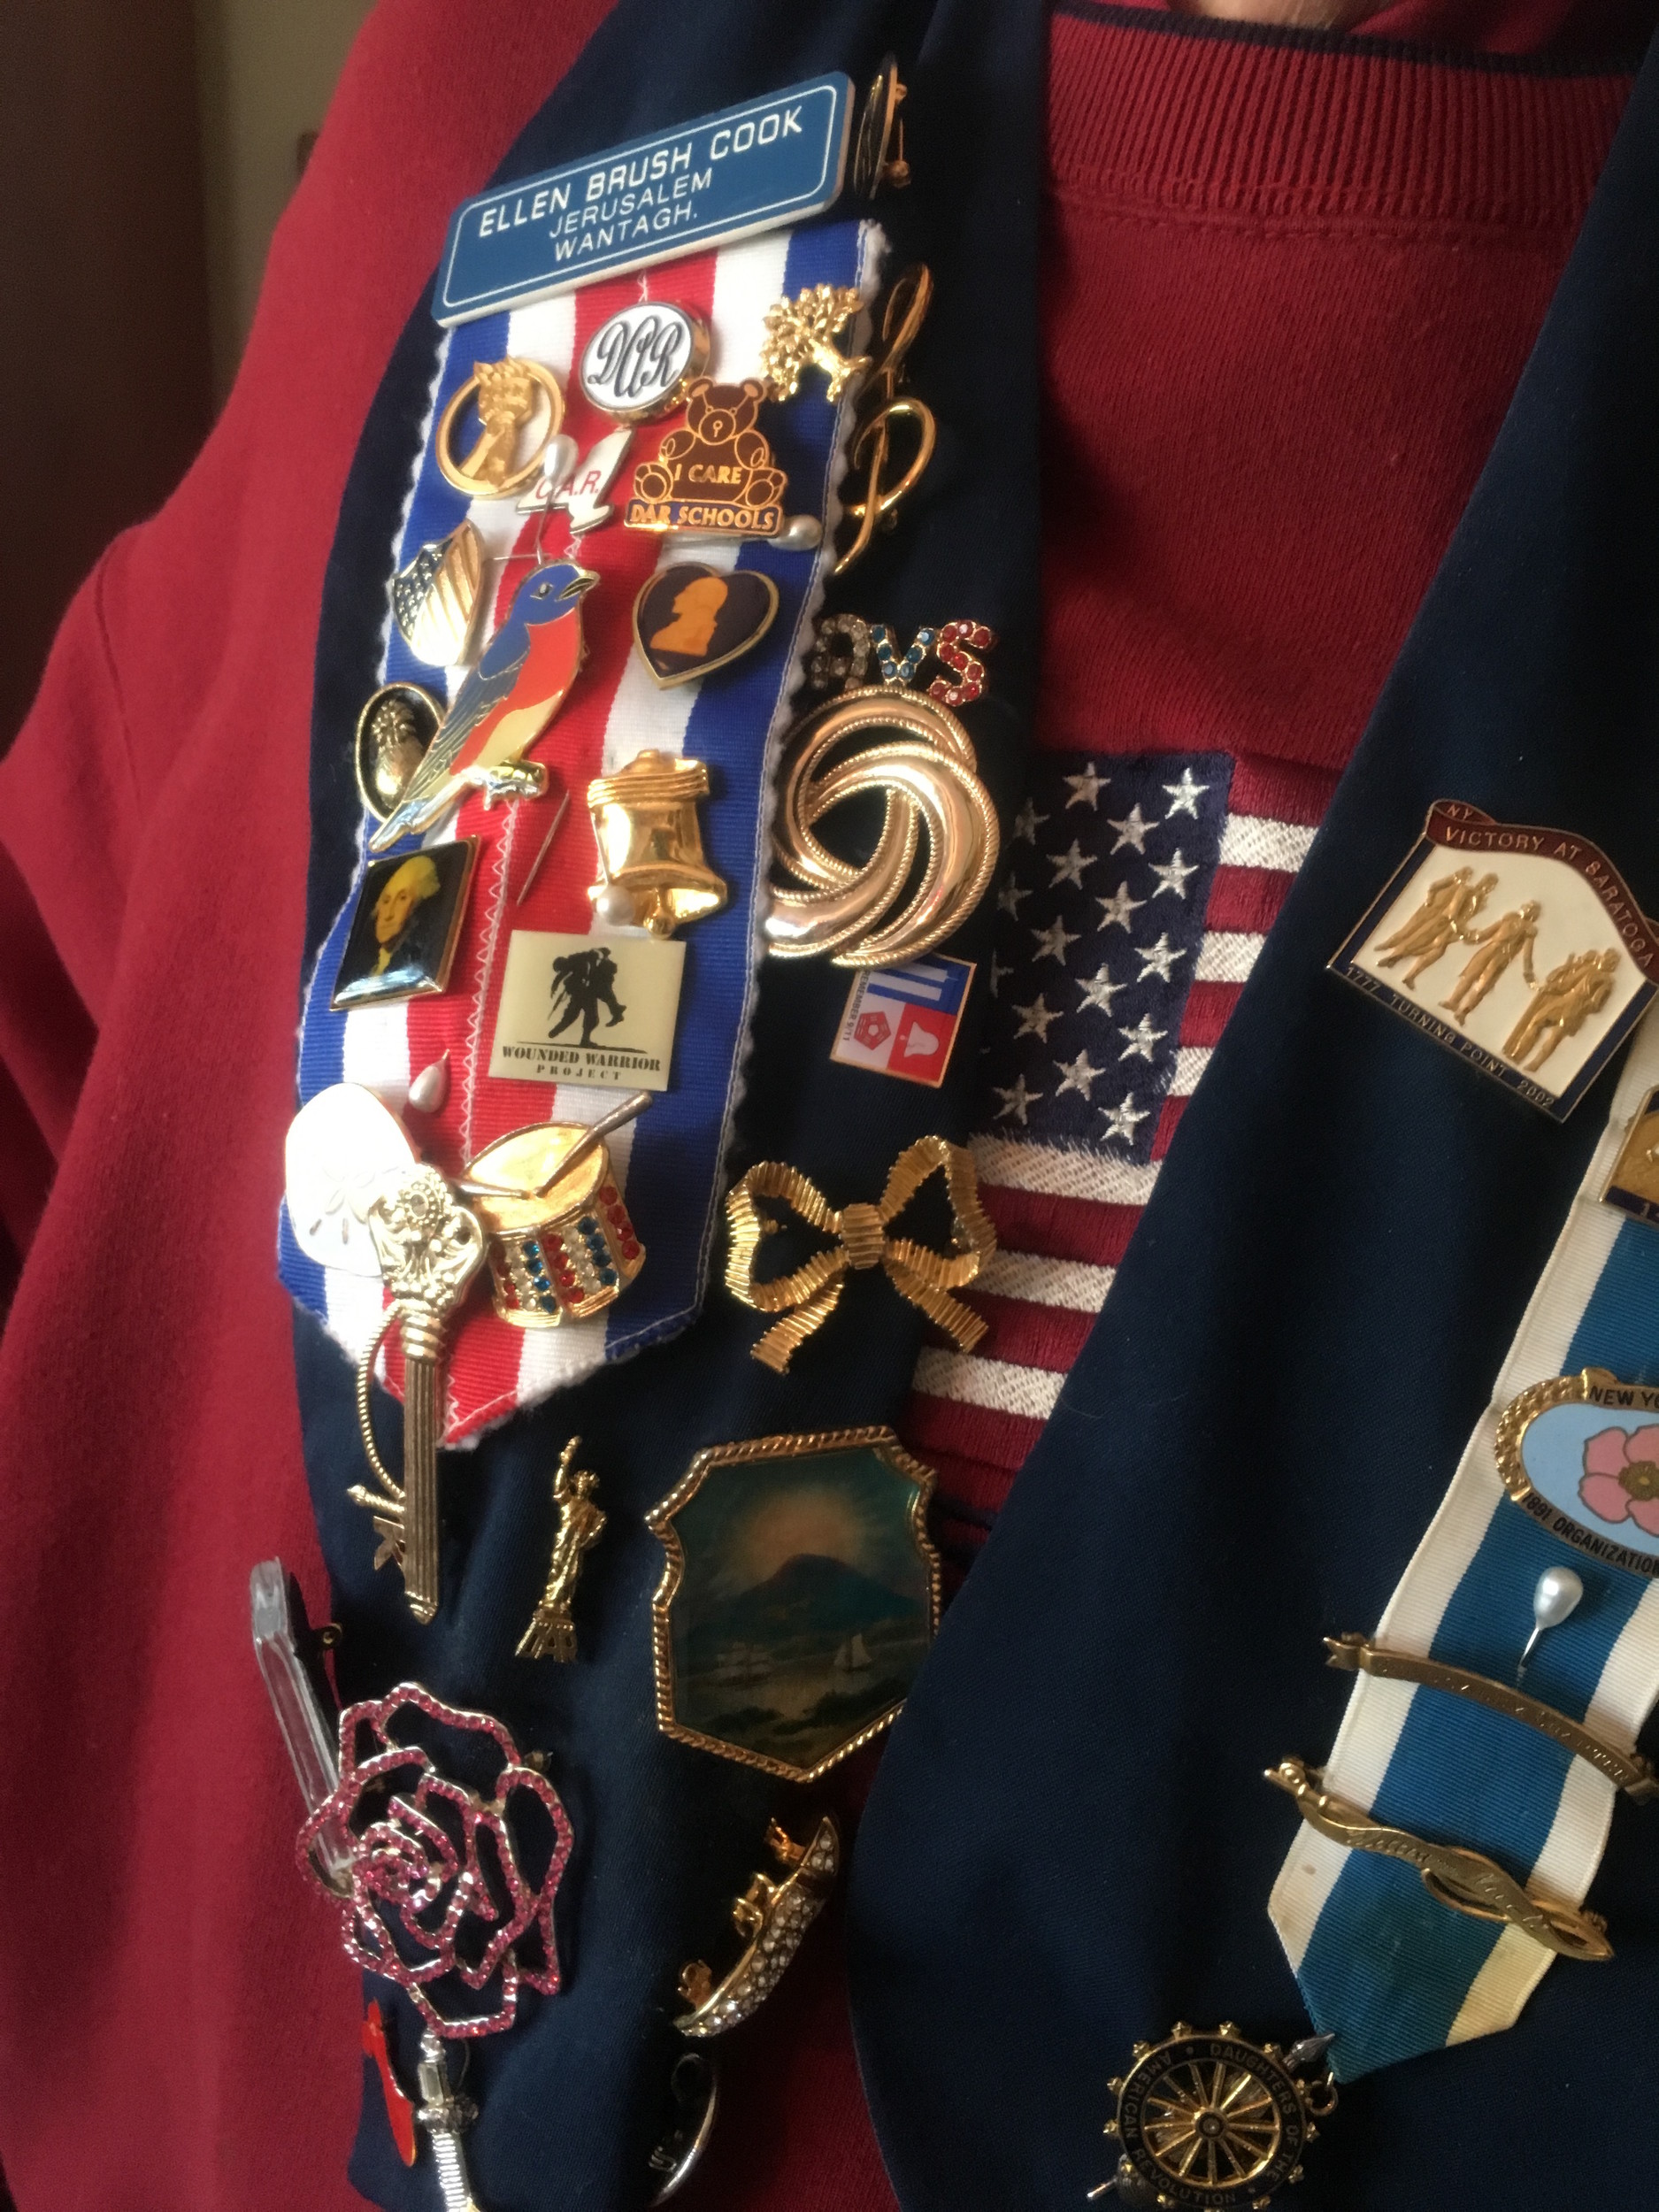 DAR members wear pins that signify their connection to different places and points in history.